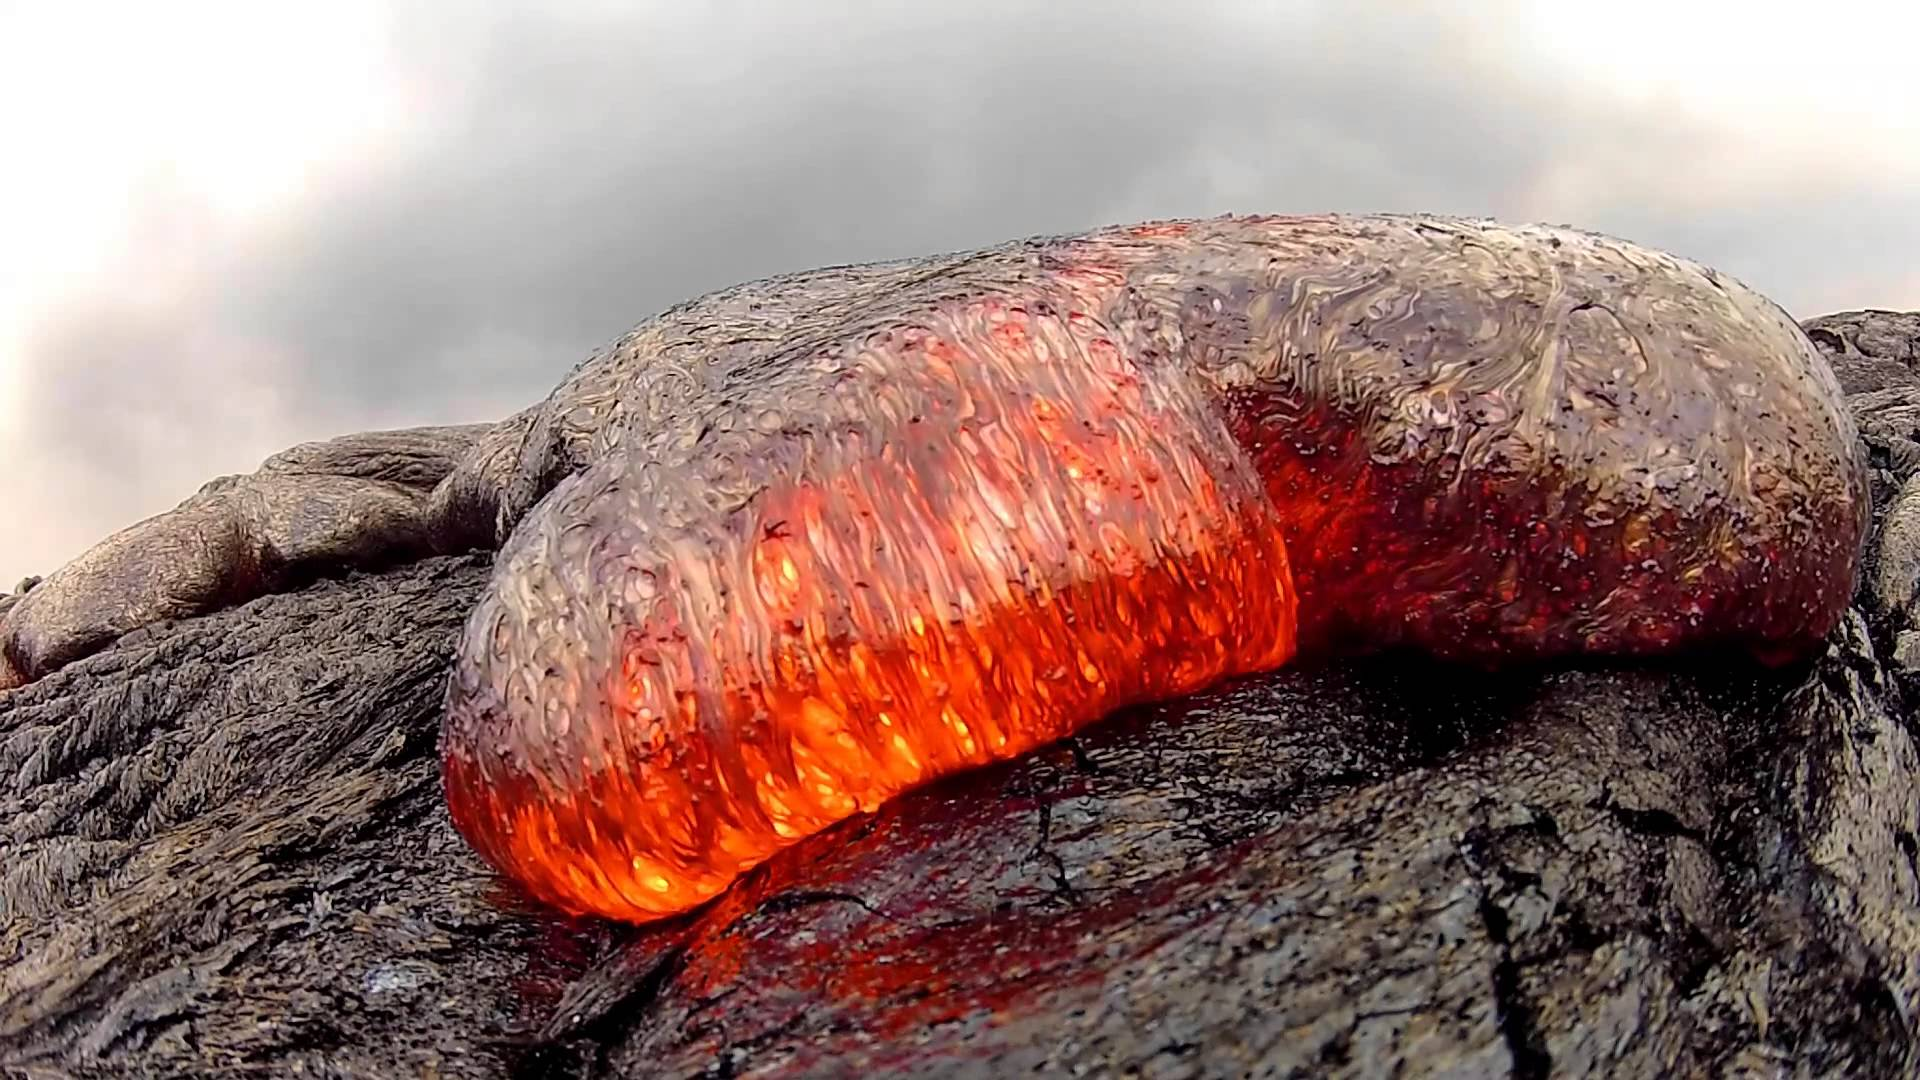 7 15 13 Lava Flow Hawaii Kilauea Volcano Lava Flow GoPro Hero 2 ...